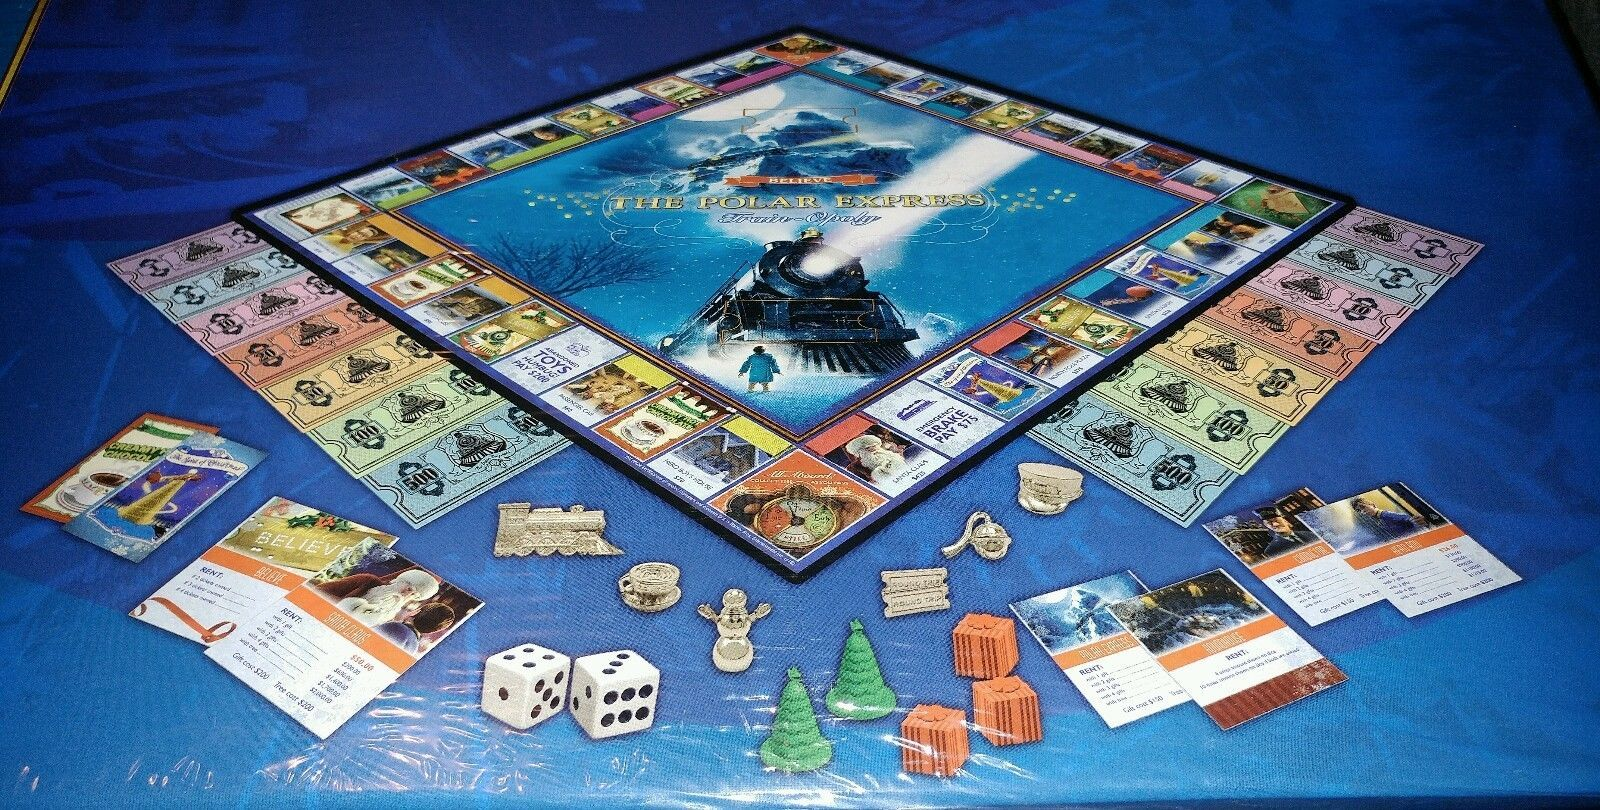 Delightful and magical spin on the Monopoly board game